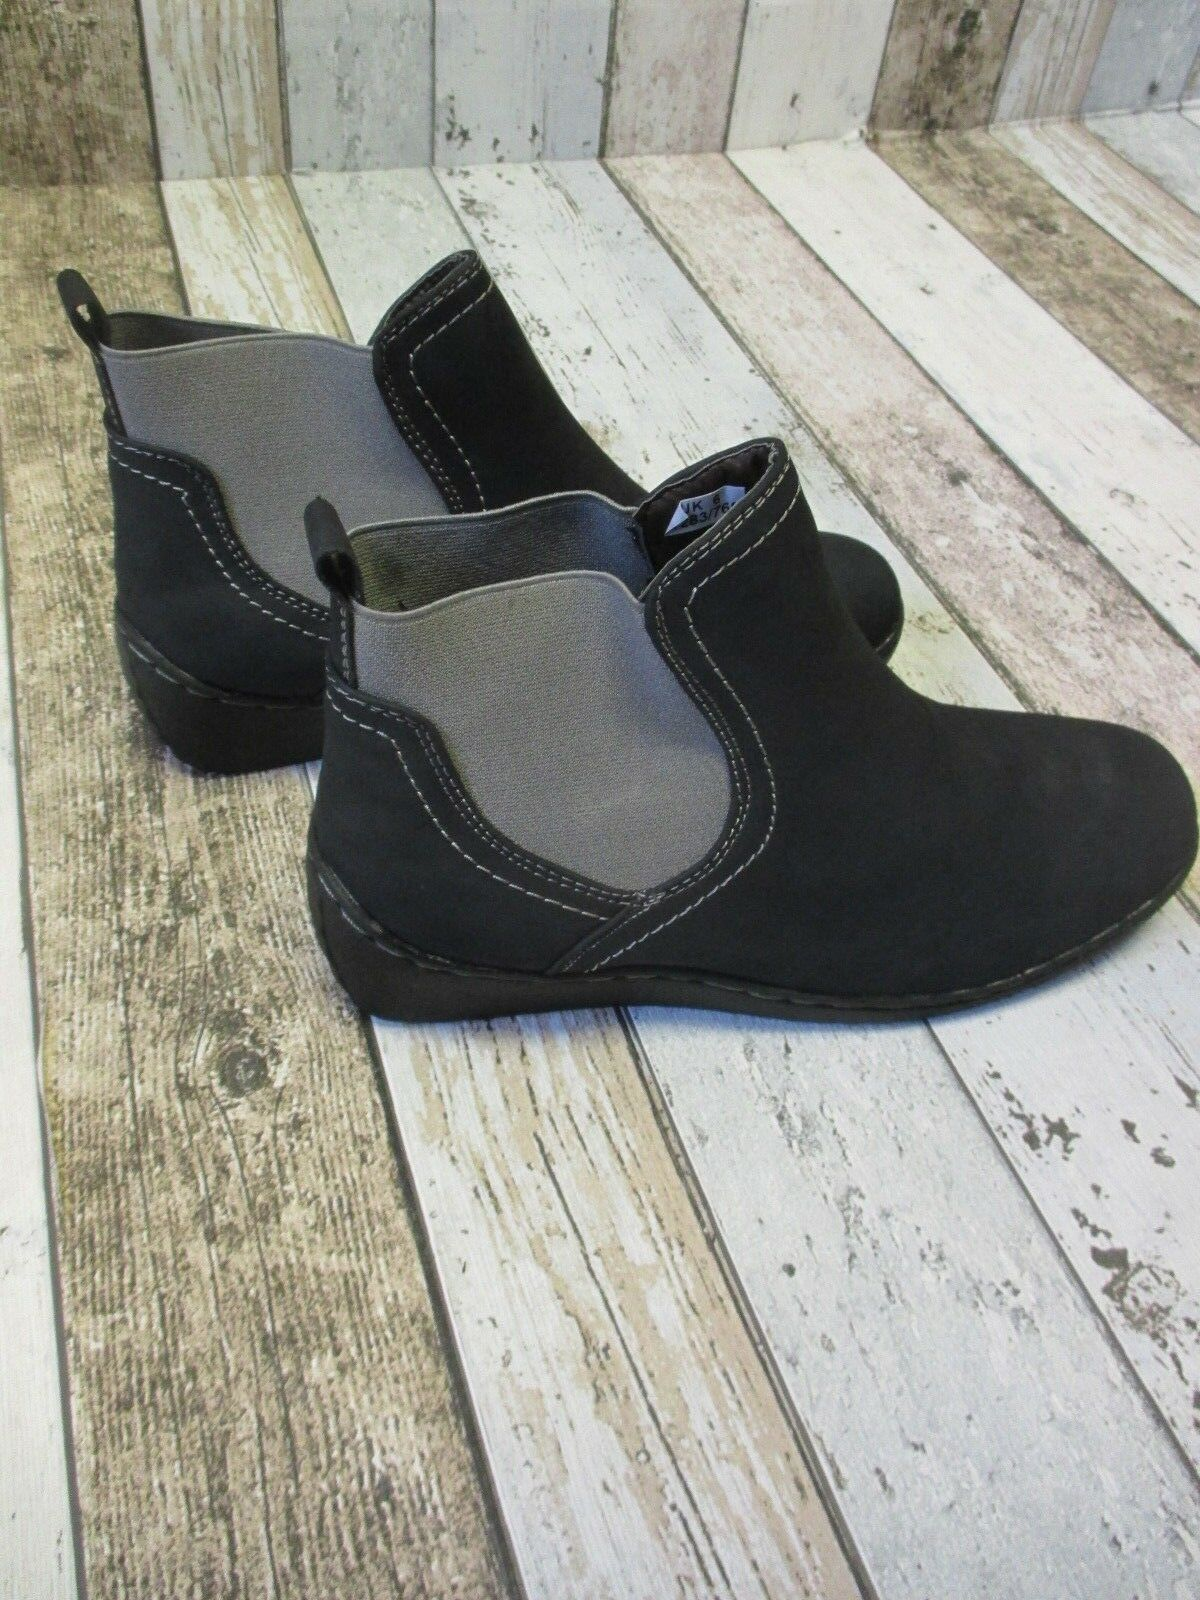 Dr Keller Hawk Wedge Ankle Boots, Black sizes 6 and 7 (2922118/126 loc R21) *